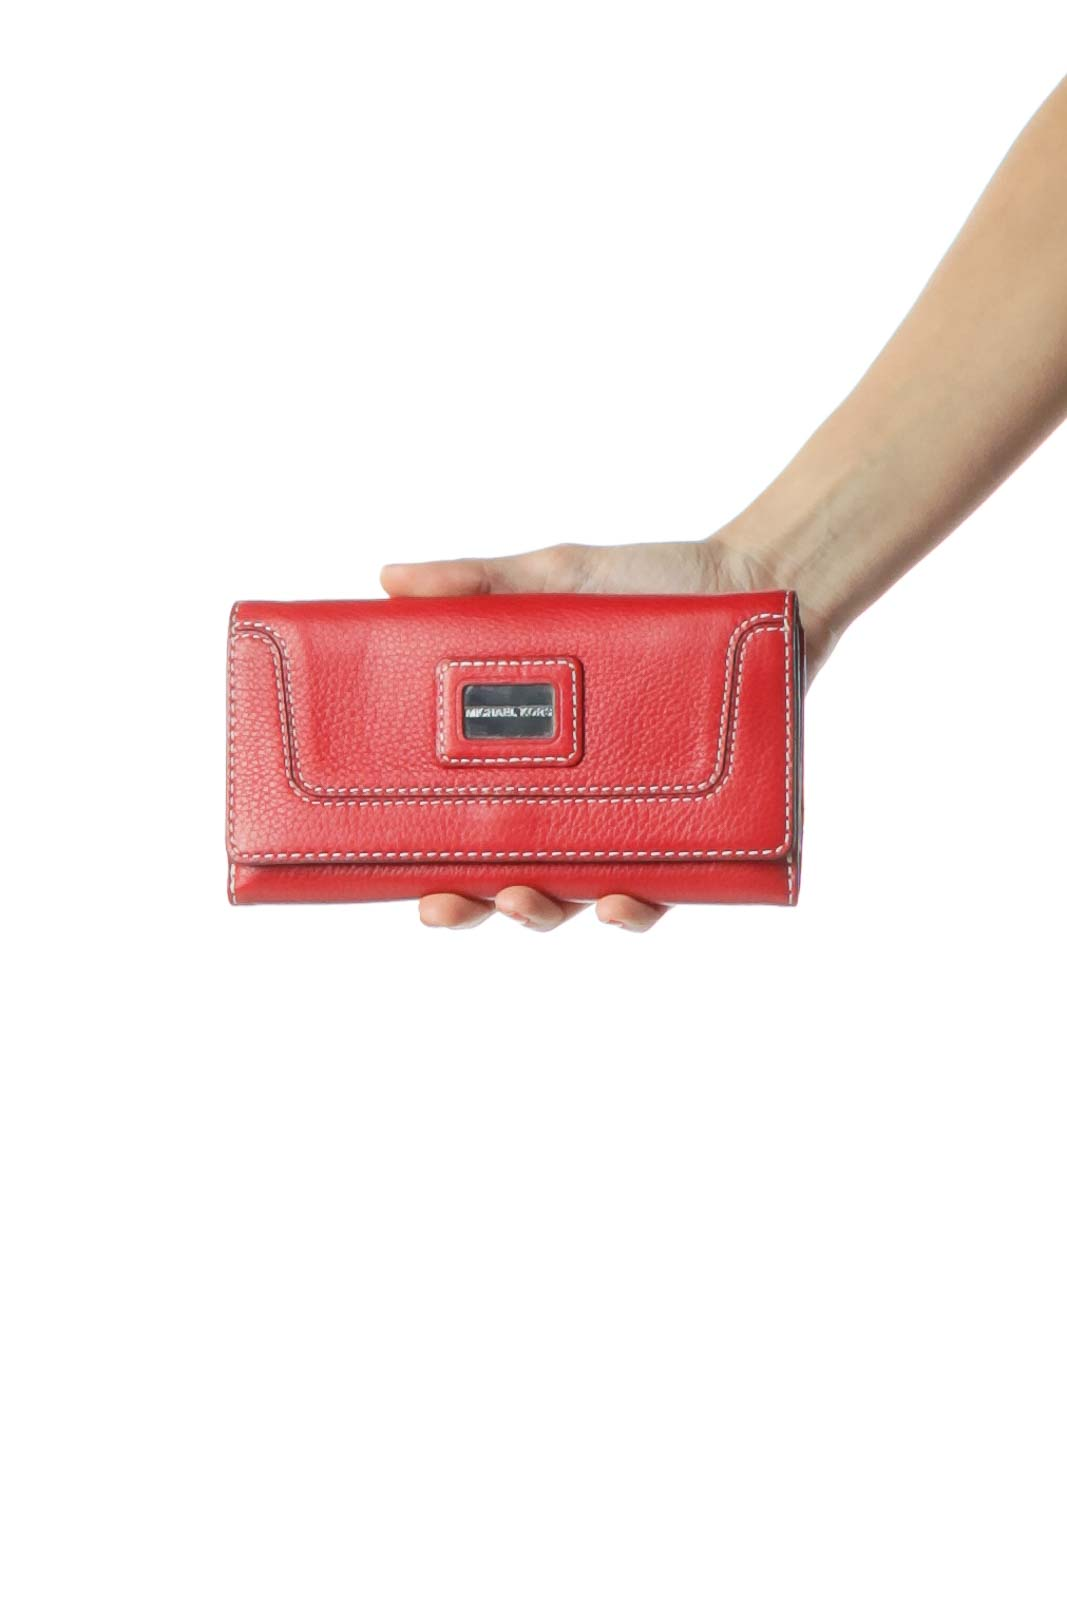 c6b3d940192 Shop Red Stitched Leather Wallet clothing and handbags at SilkRoll ...